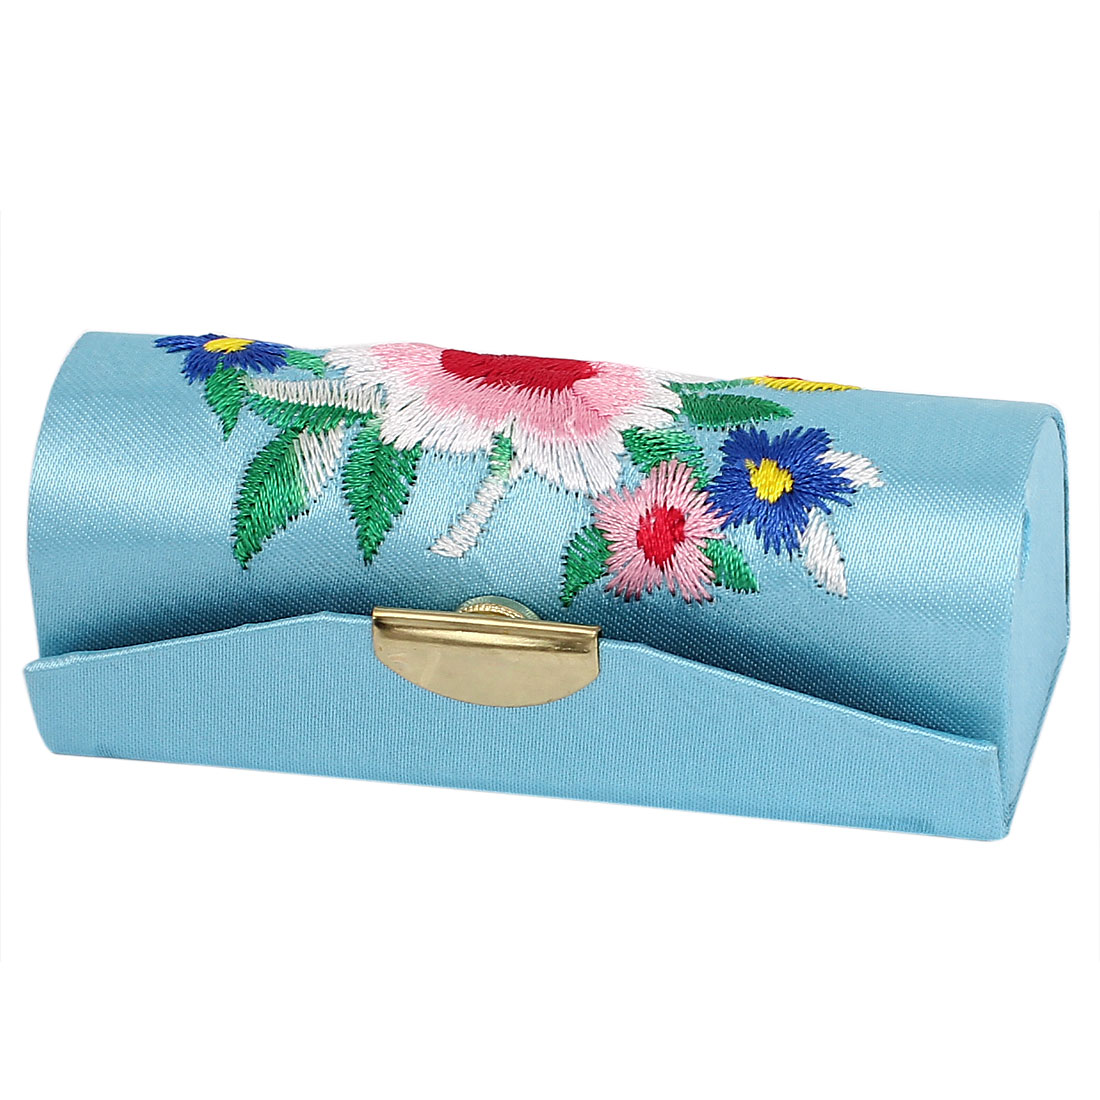 Lady Floral Prints Sky Blue Lipstick Lip Chap Stick Case Jewelry Holder Box w Mirror